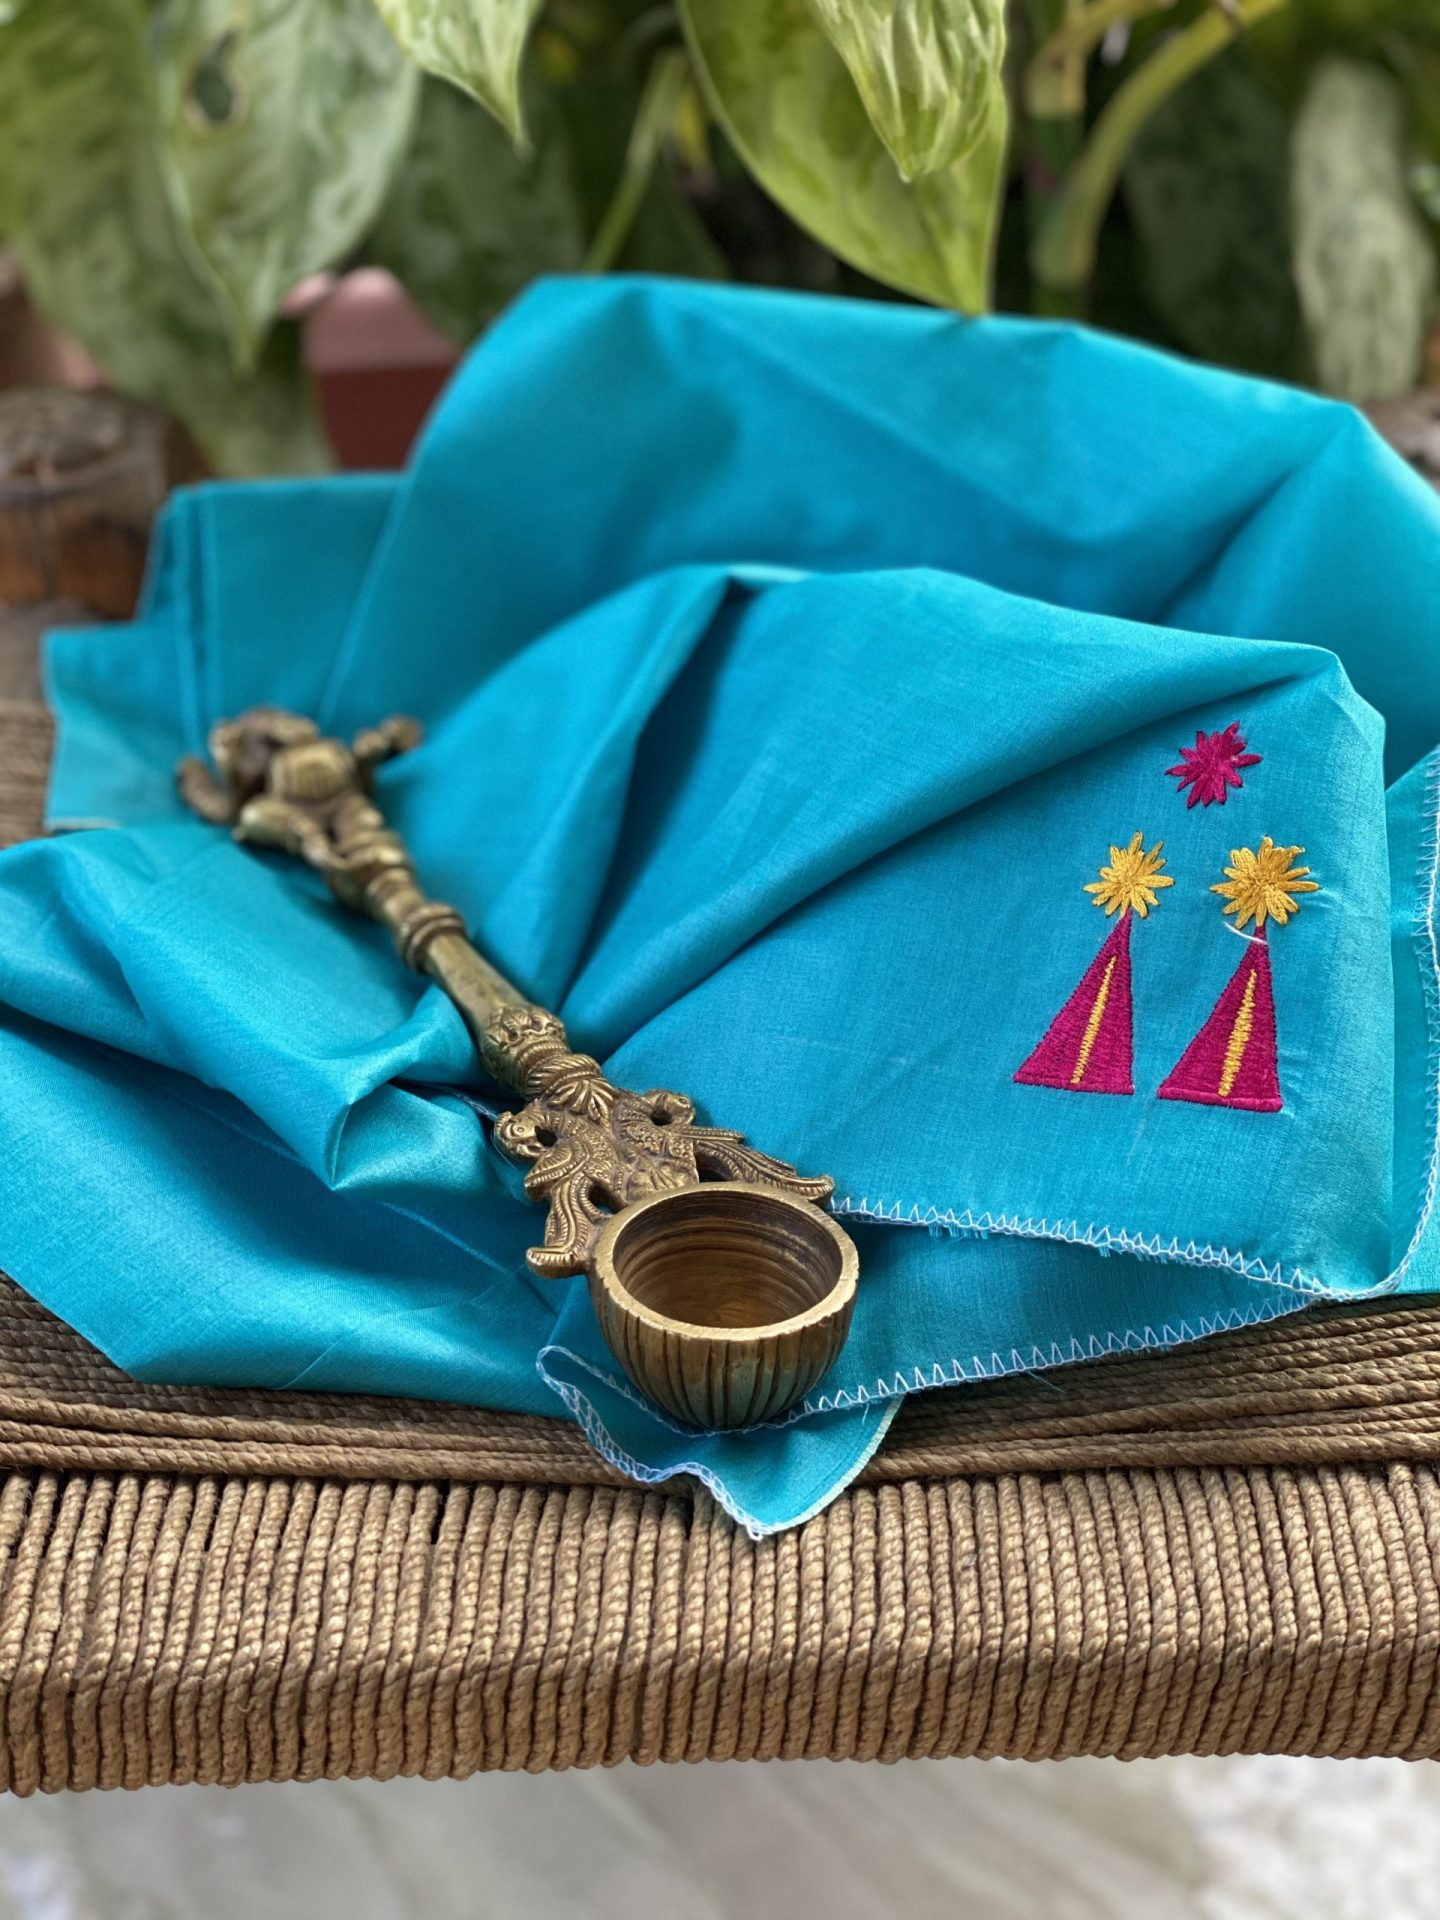 SKY BLUE TUSSAR SILK TRIBAL HAND EMBROIDERED BLOUSE